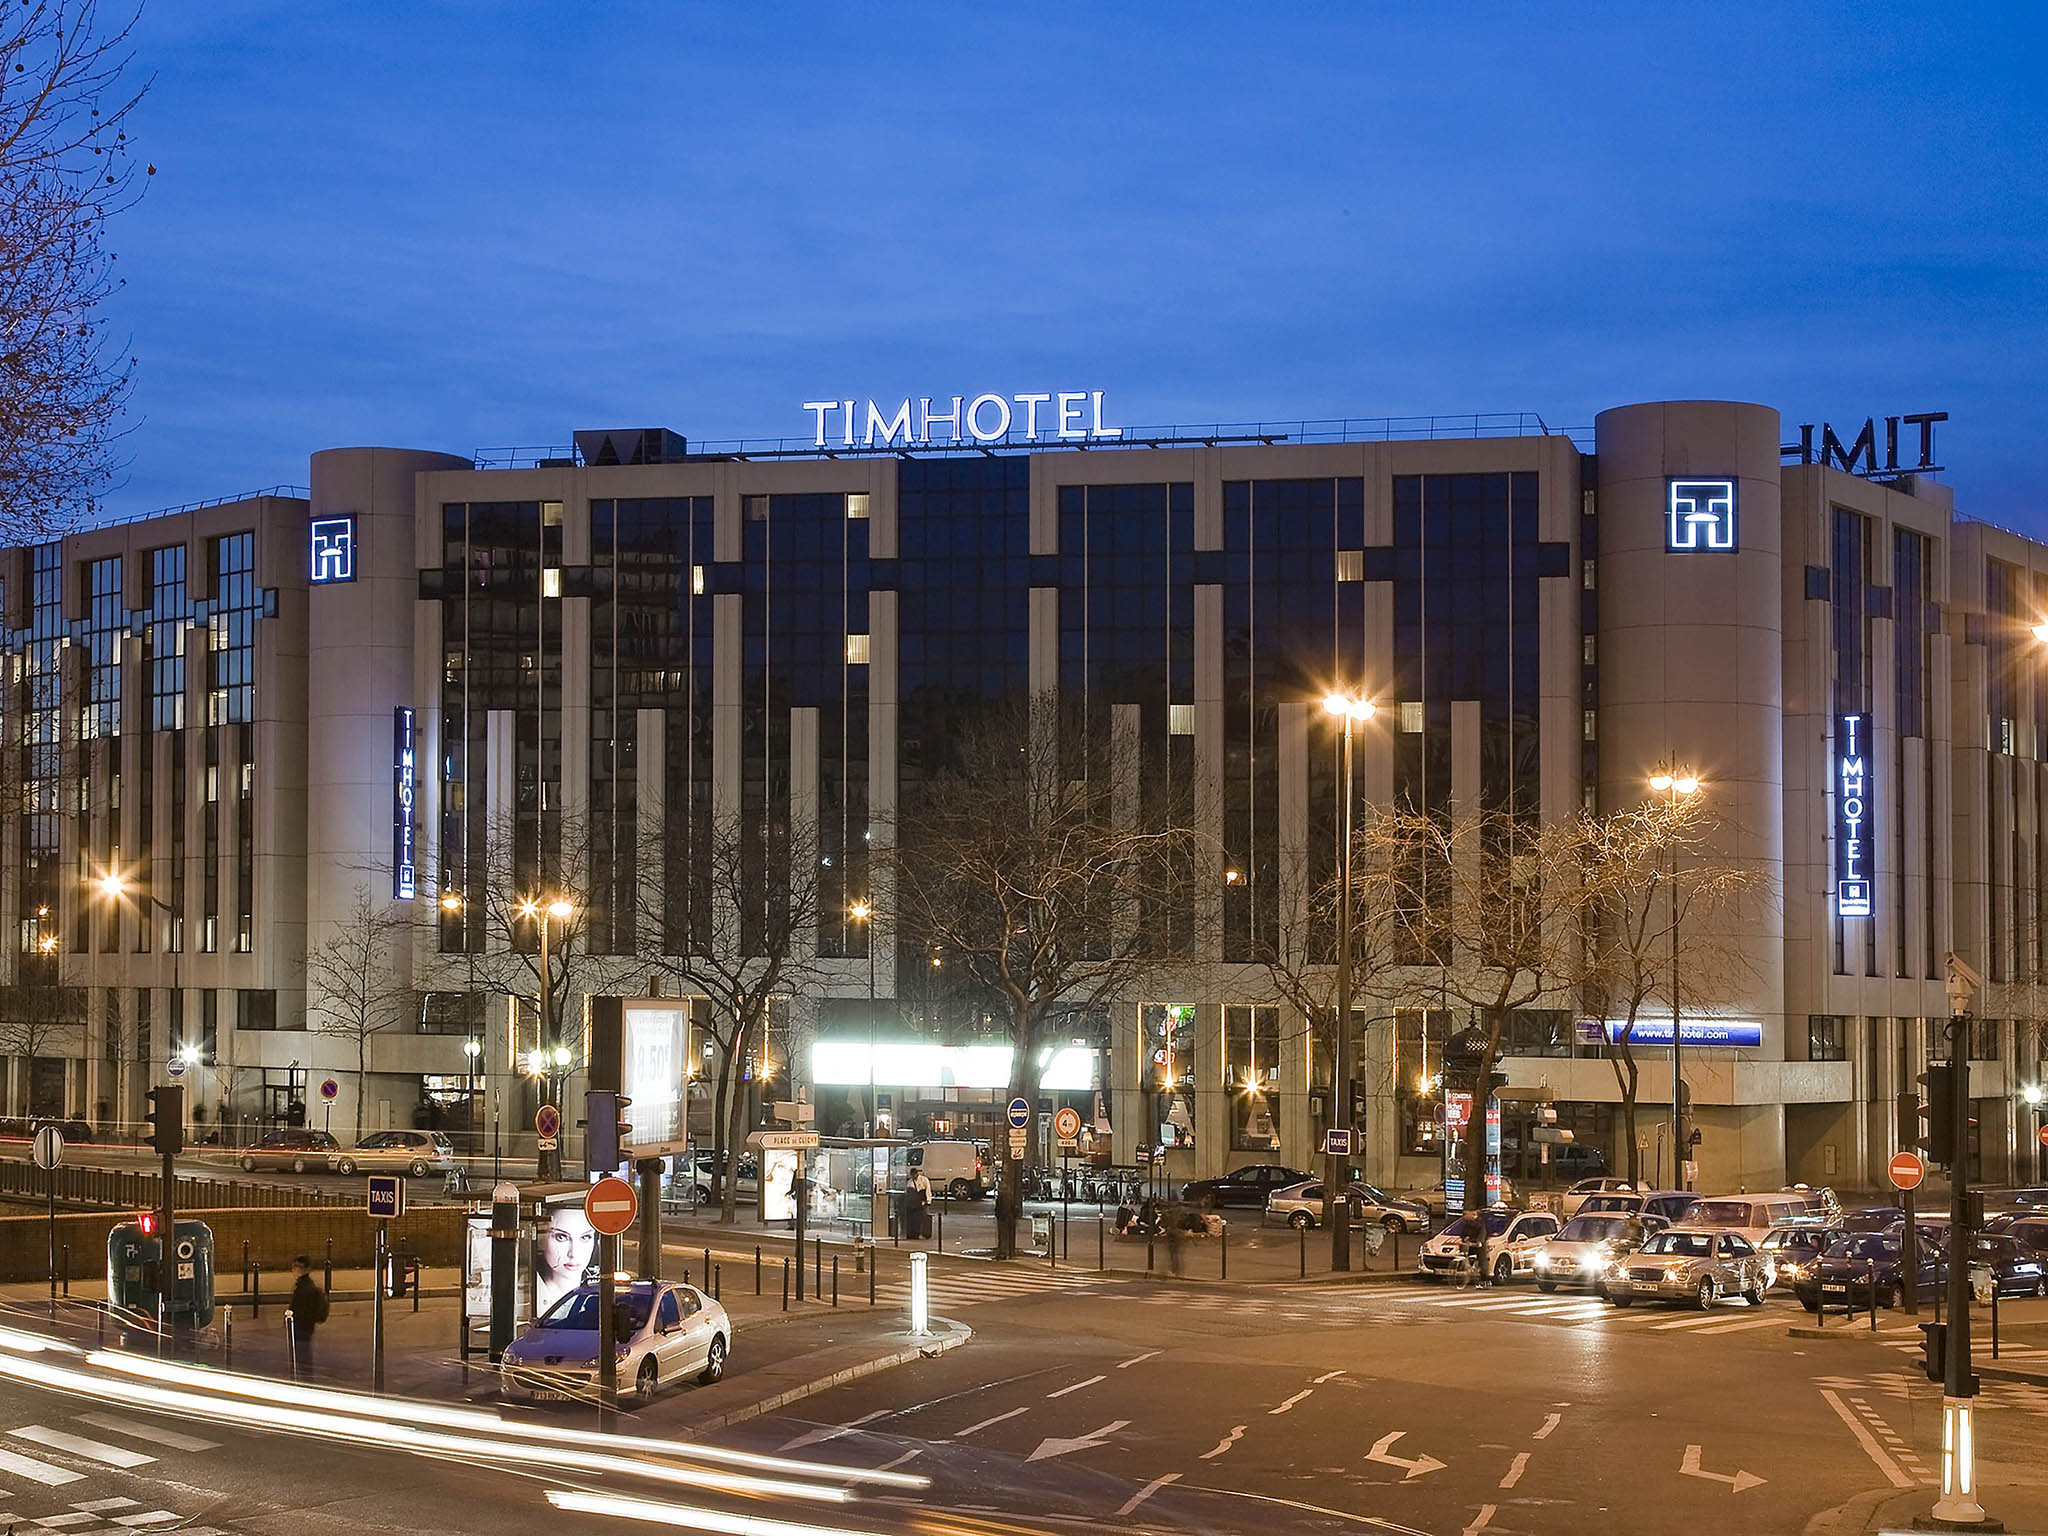 Hotel in paris timhotel berthier paris 17 for Hotel france